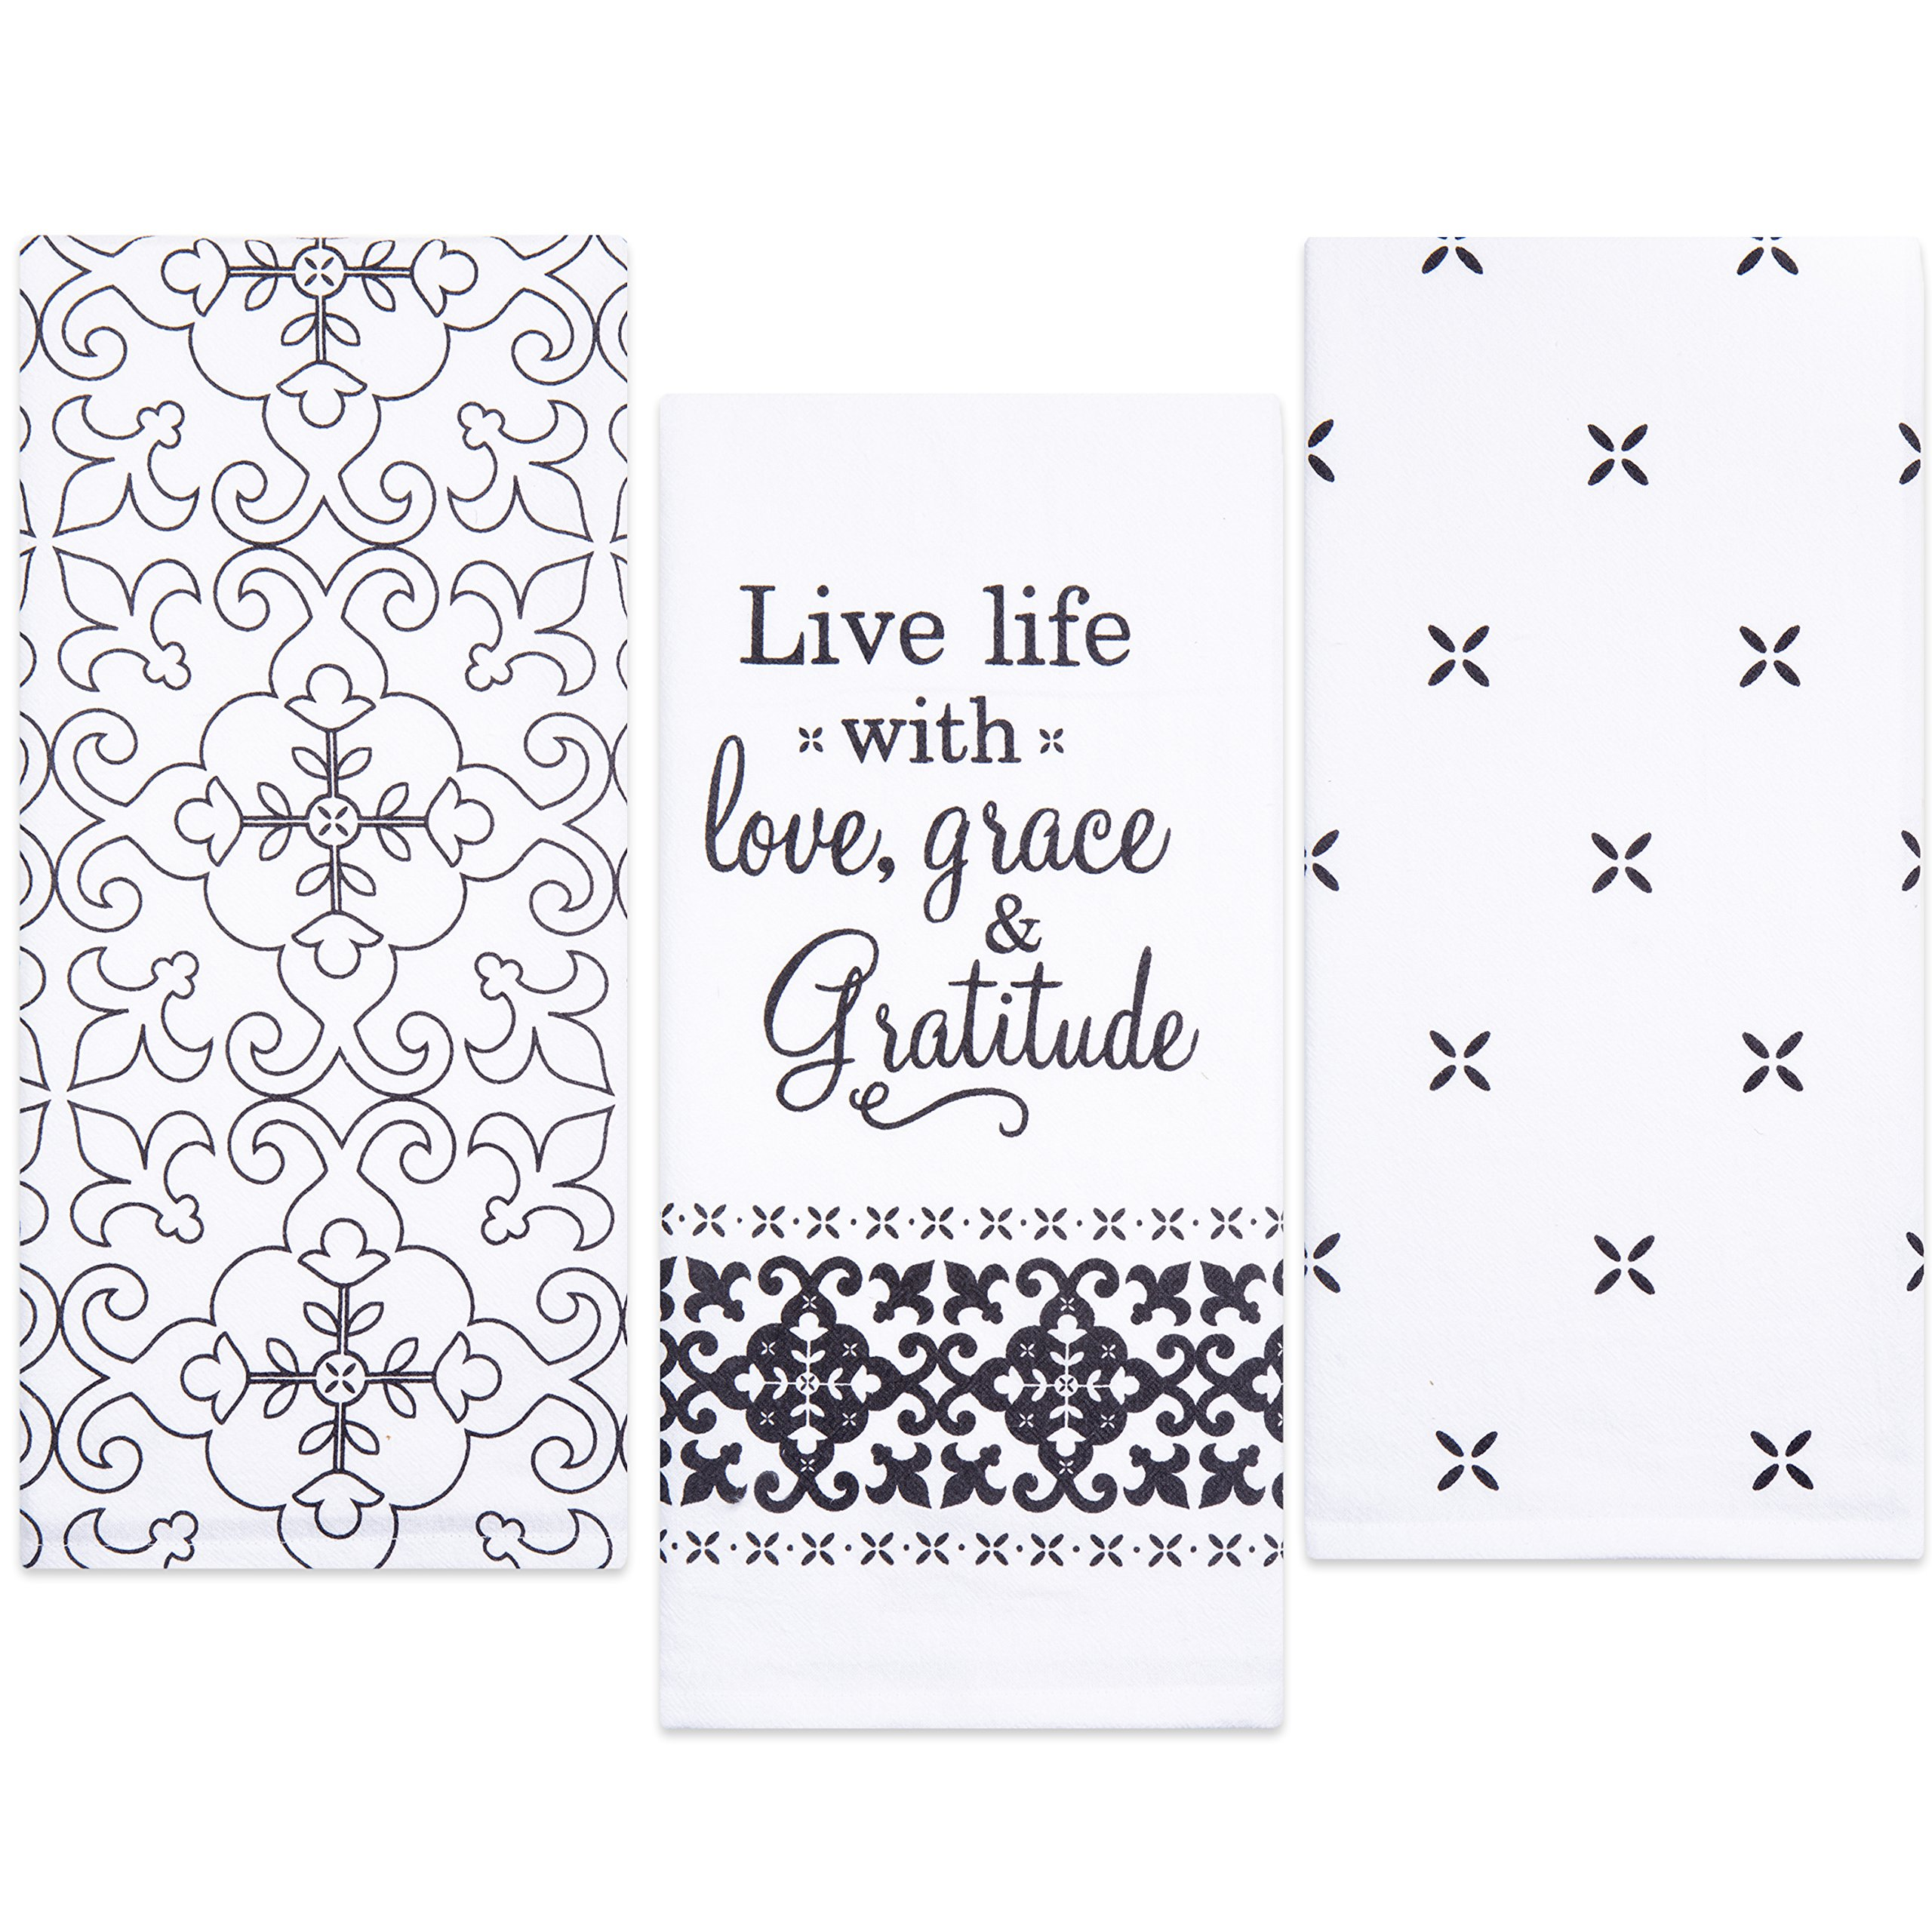 Sticky Toffee Cotton Flour Sack Kitchen Towels, Live Life Gratitude Prints, 3 Pack, 28 in x 29 in